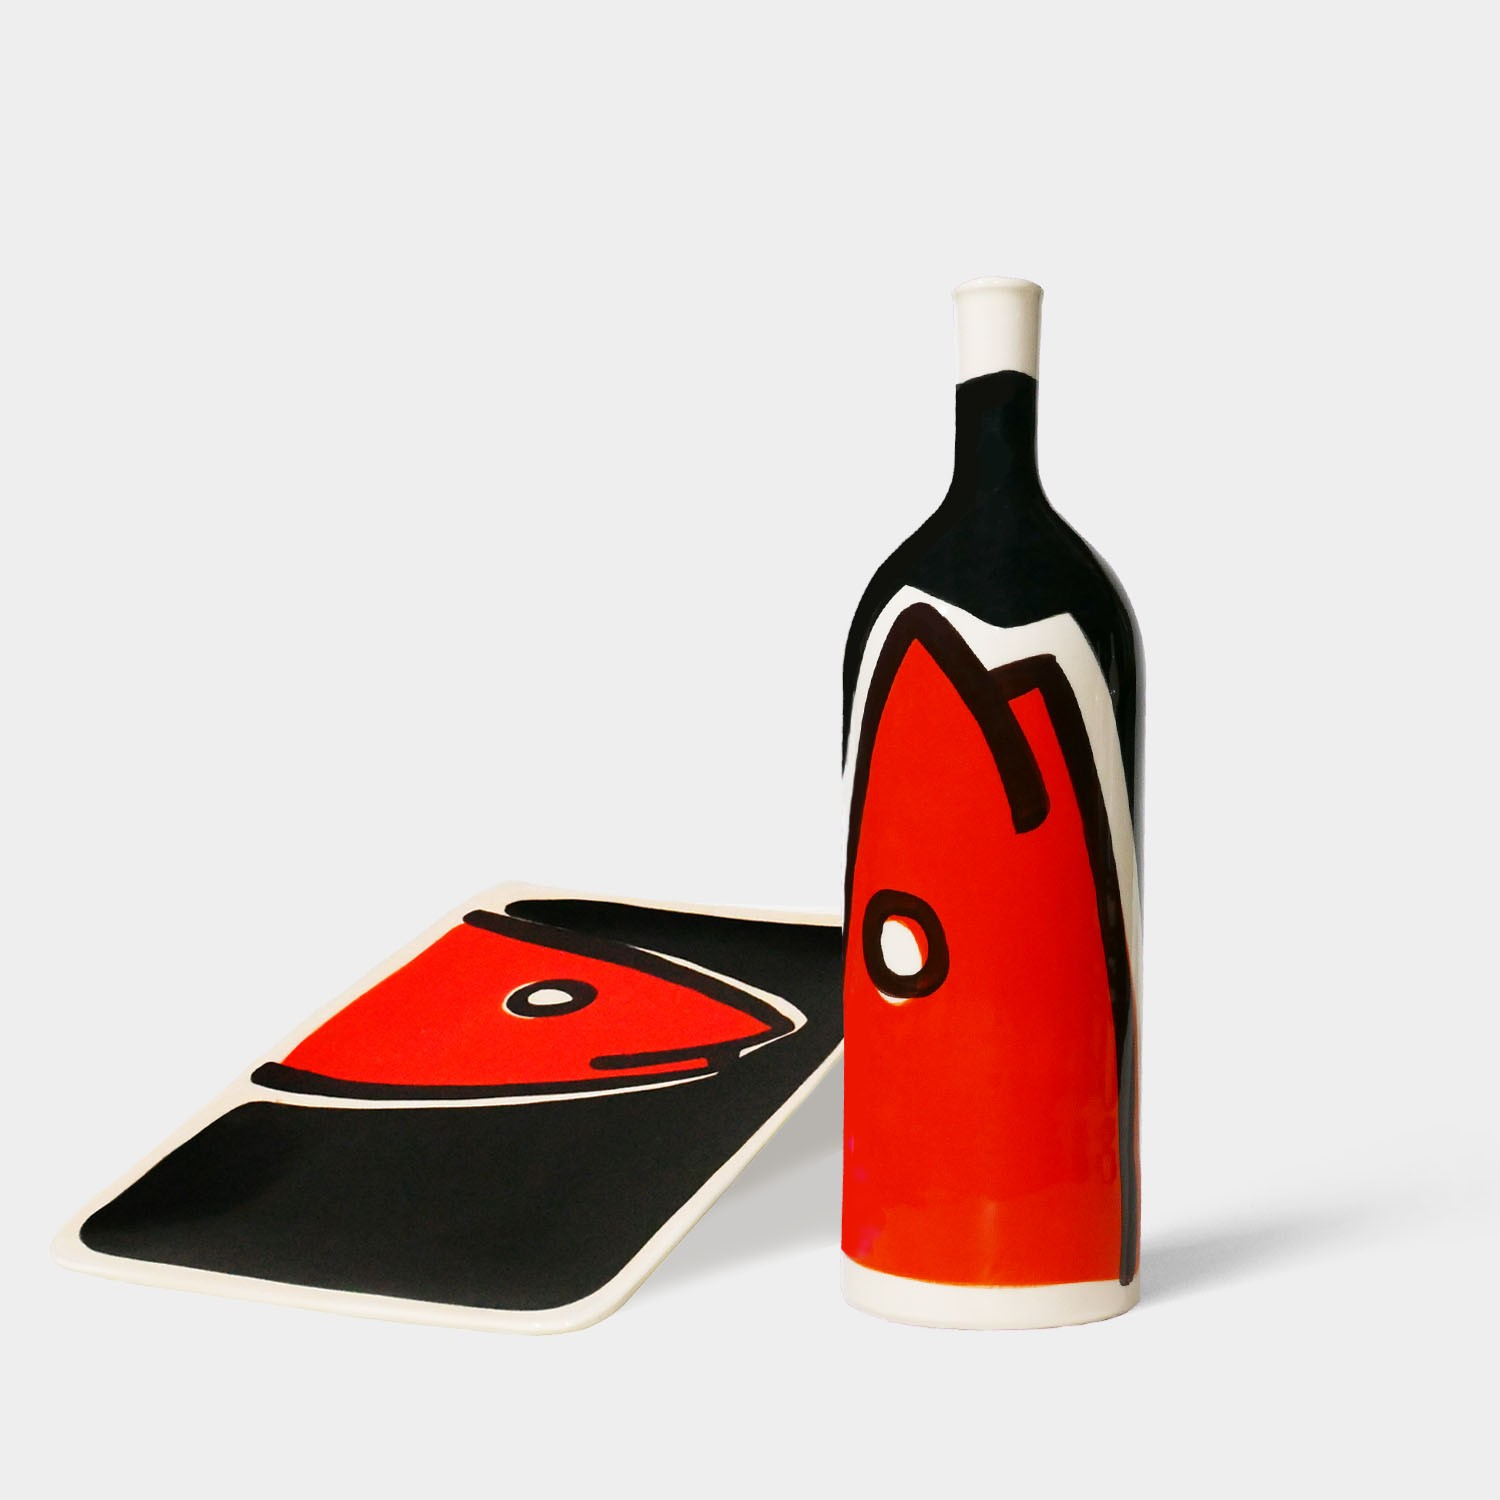 Handmade Ceramic Bottle and Tray, Black